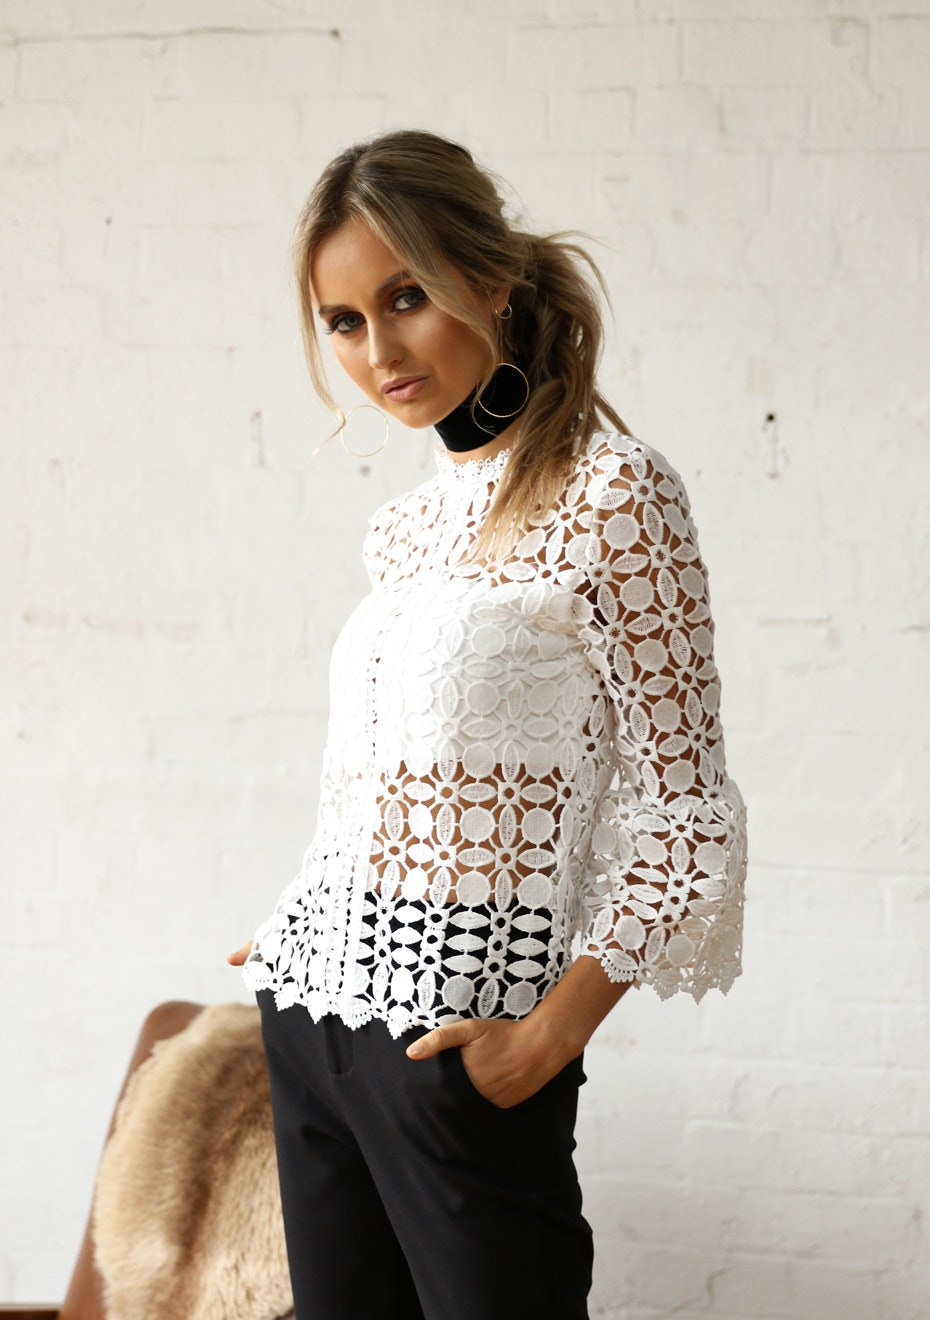 Madison - SERENADE LACE TOP - WHITE